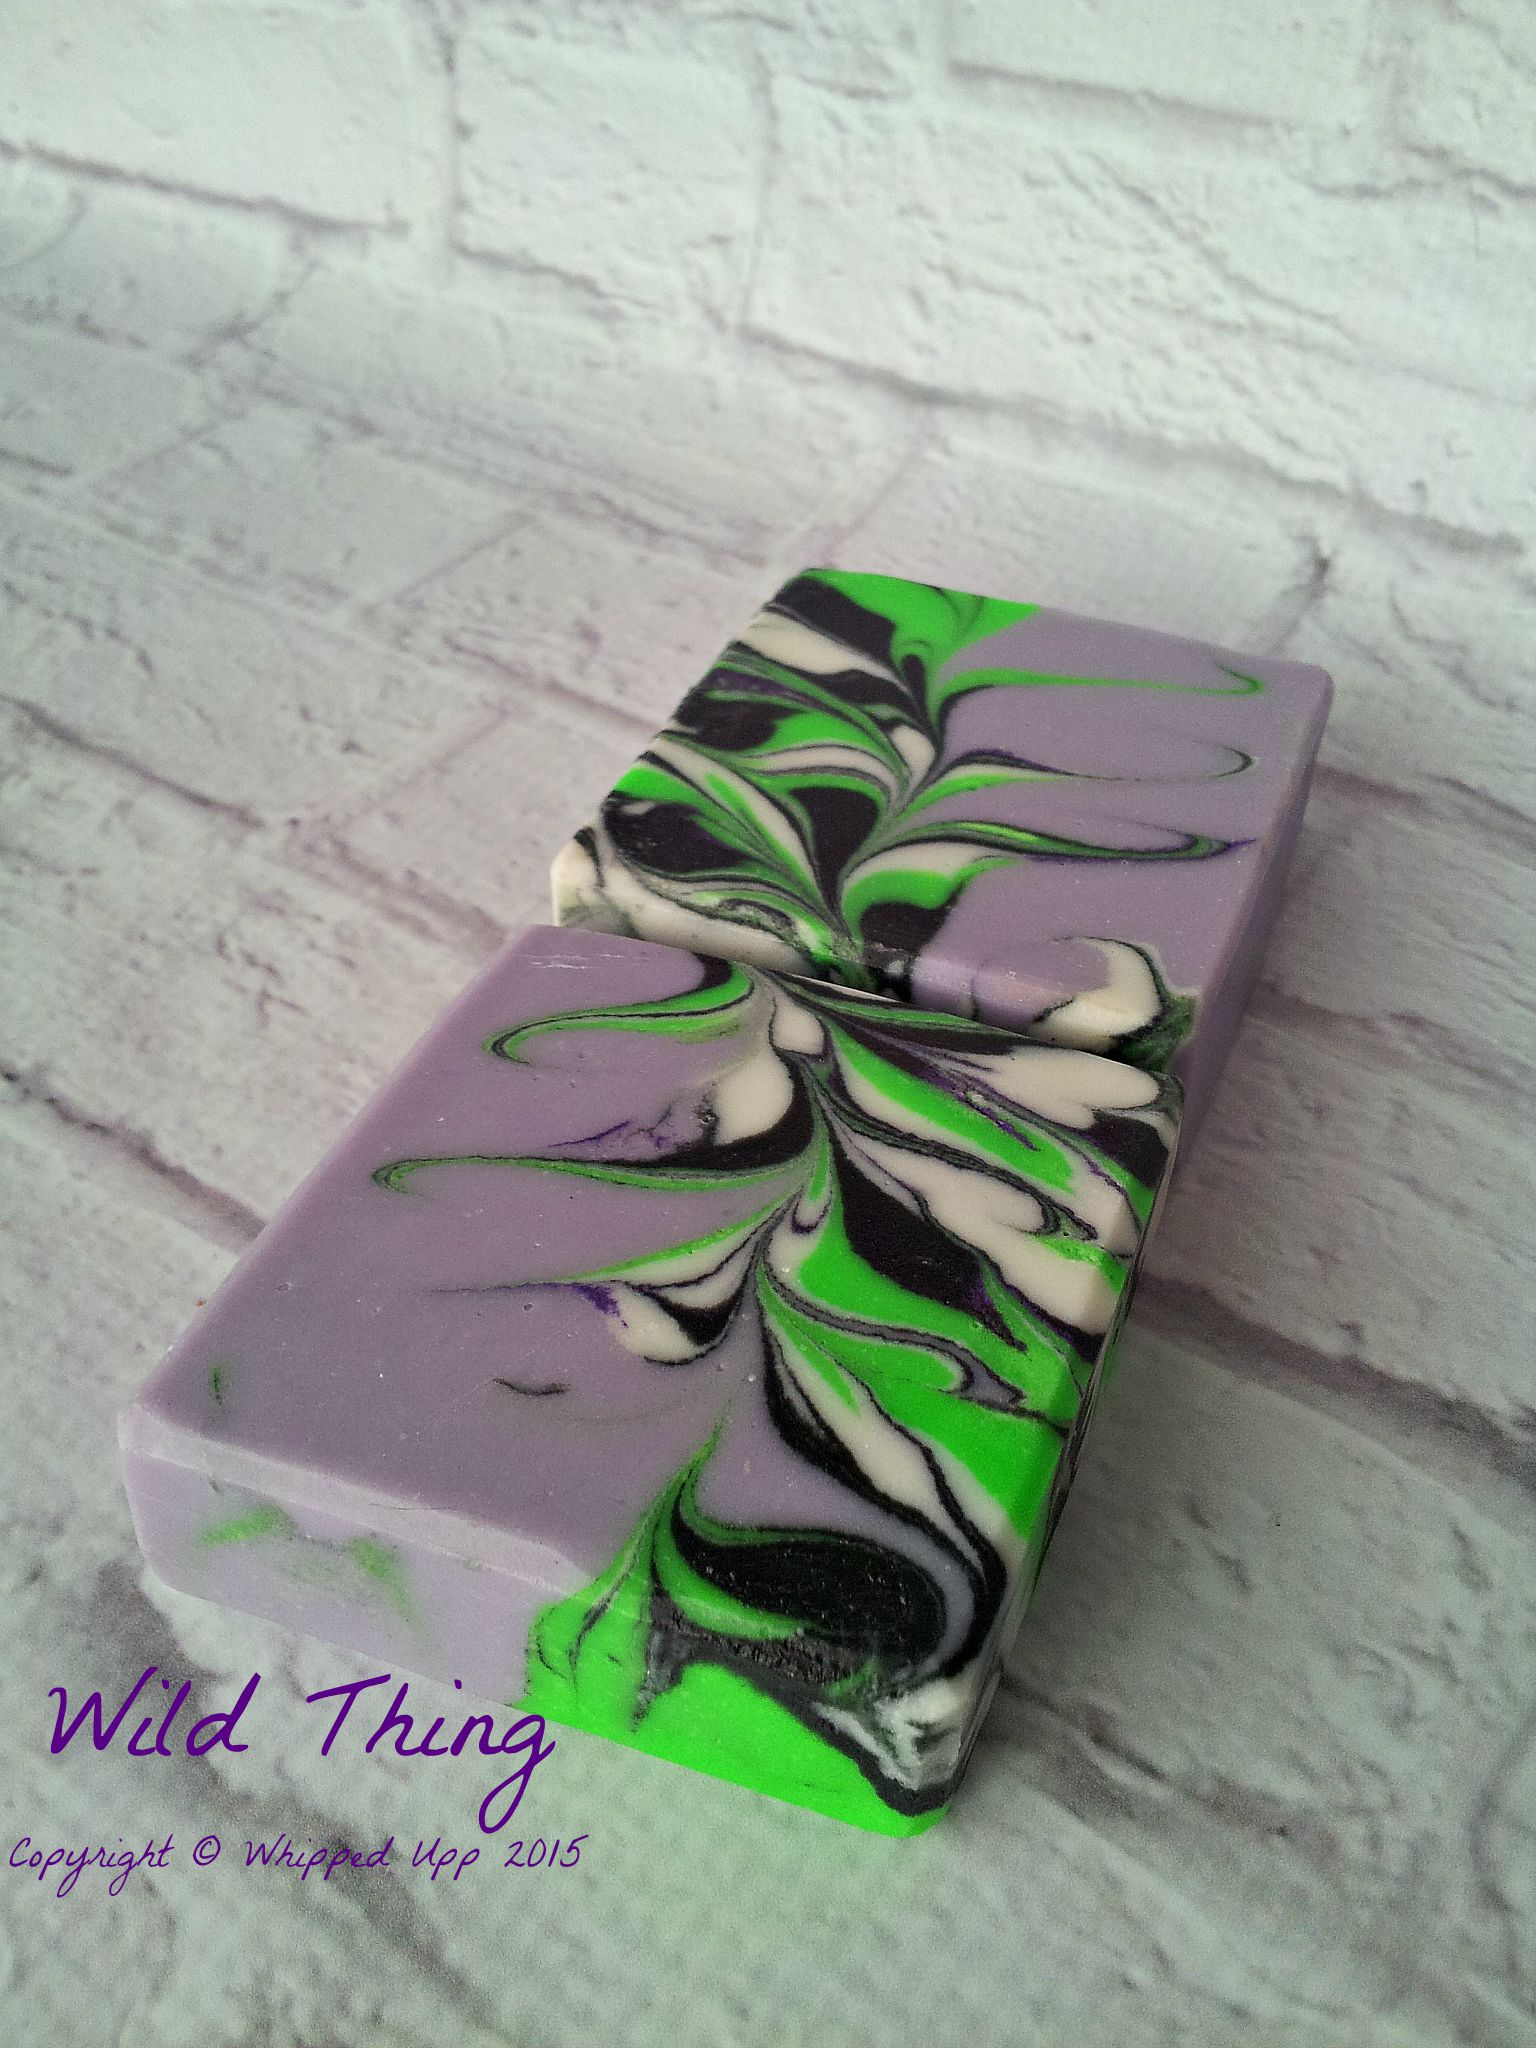 wild thing mantra marble